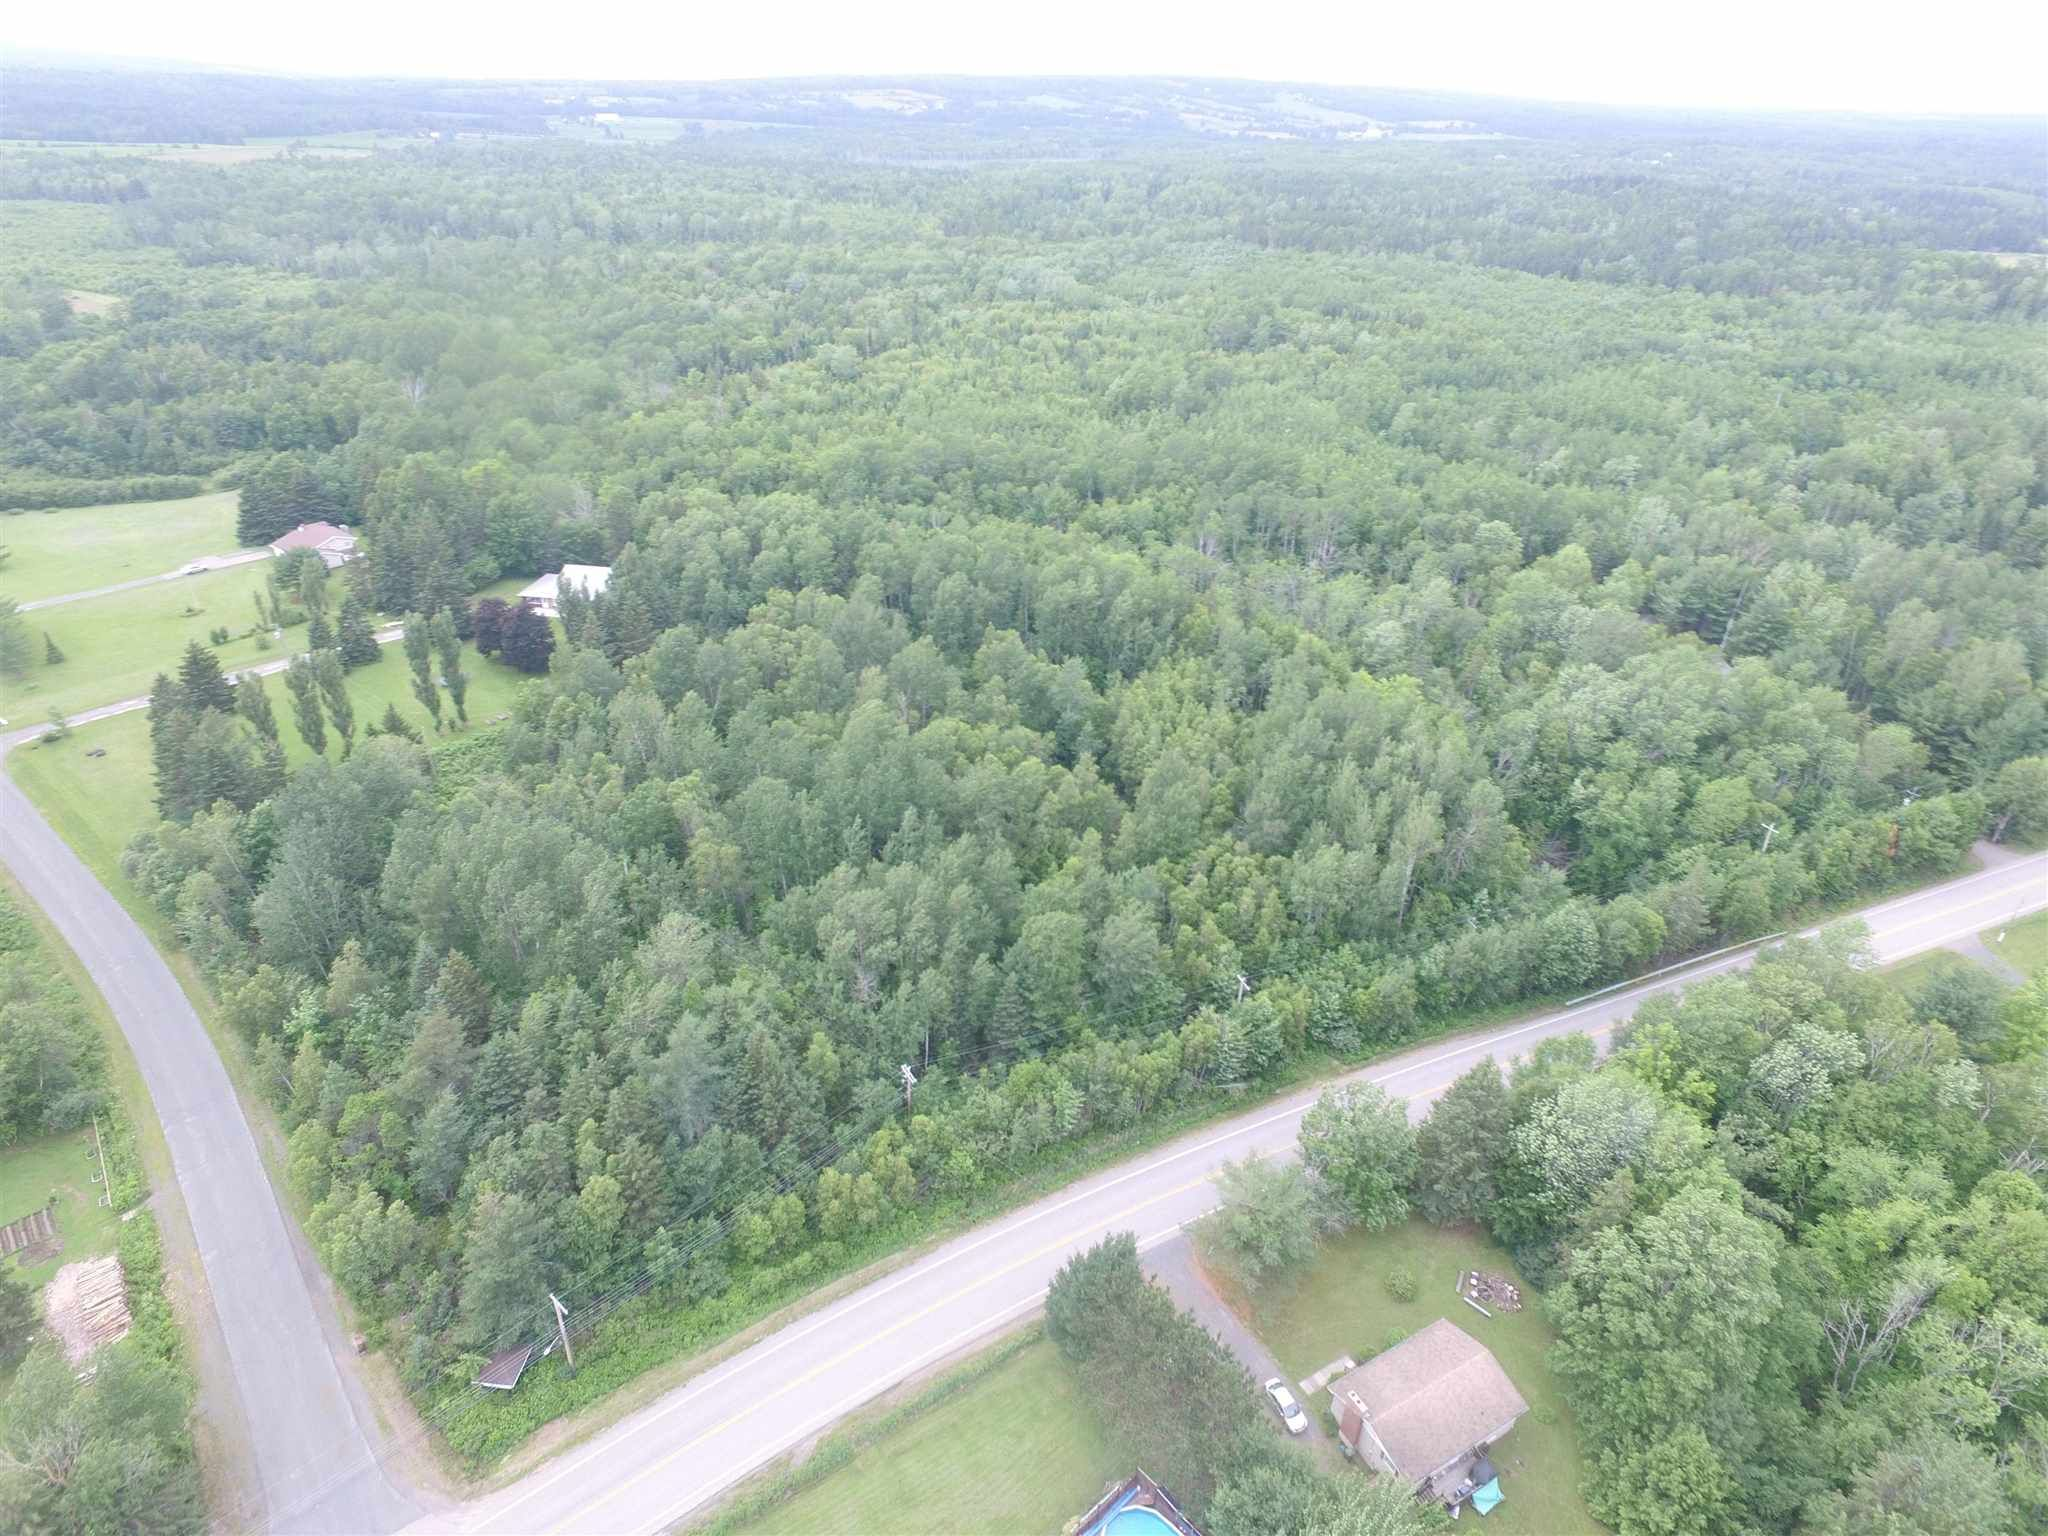 Main Photo: Lot 3 Highway 376 Drive in Durham: 108-Rural Pictou County Vacant Land for sale (Northern Region)  : MLS®# 202117803